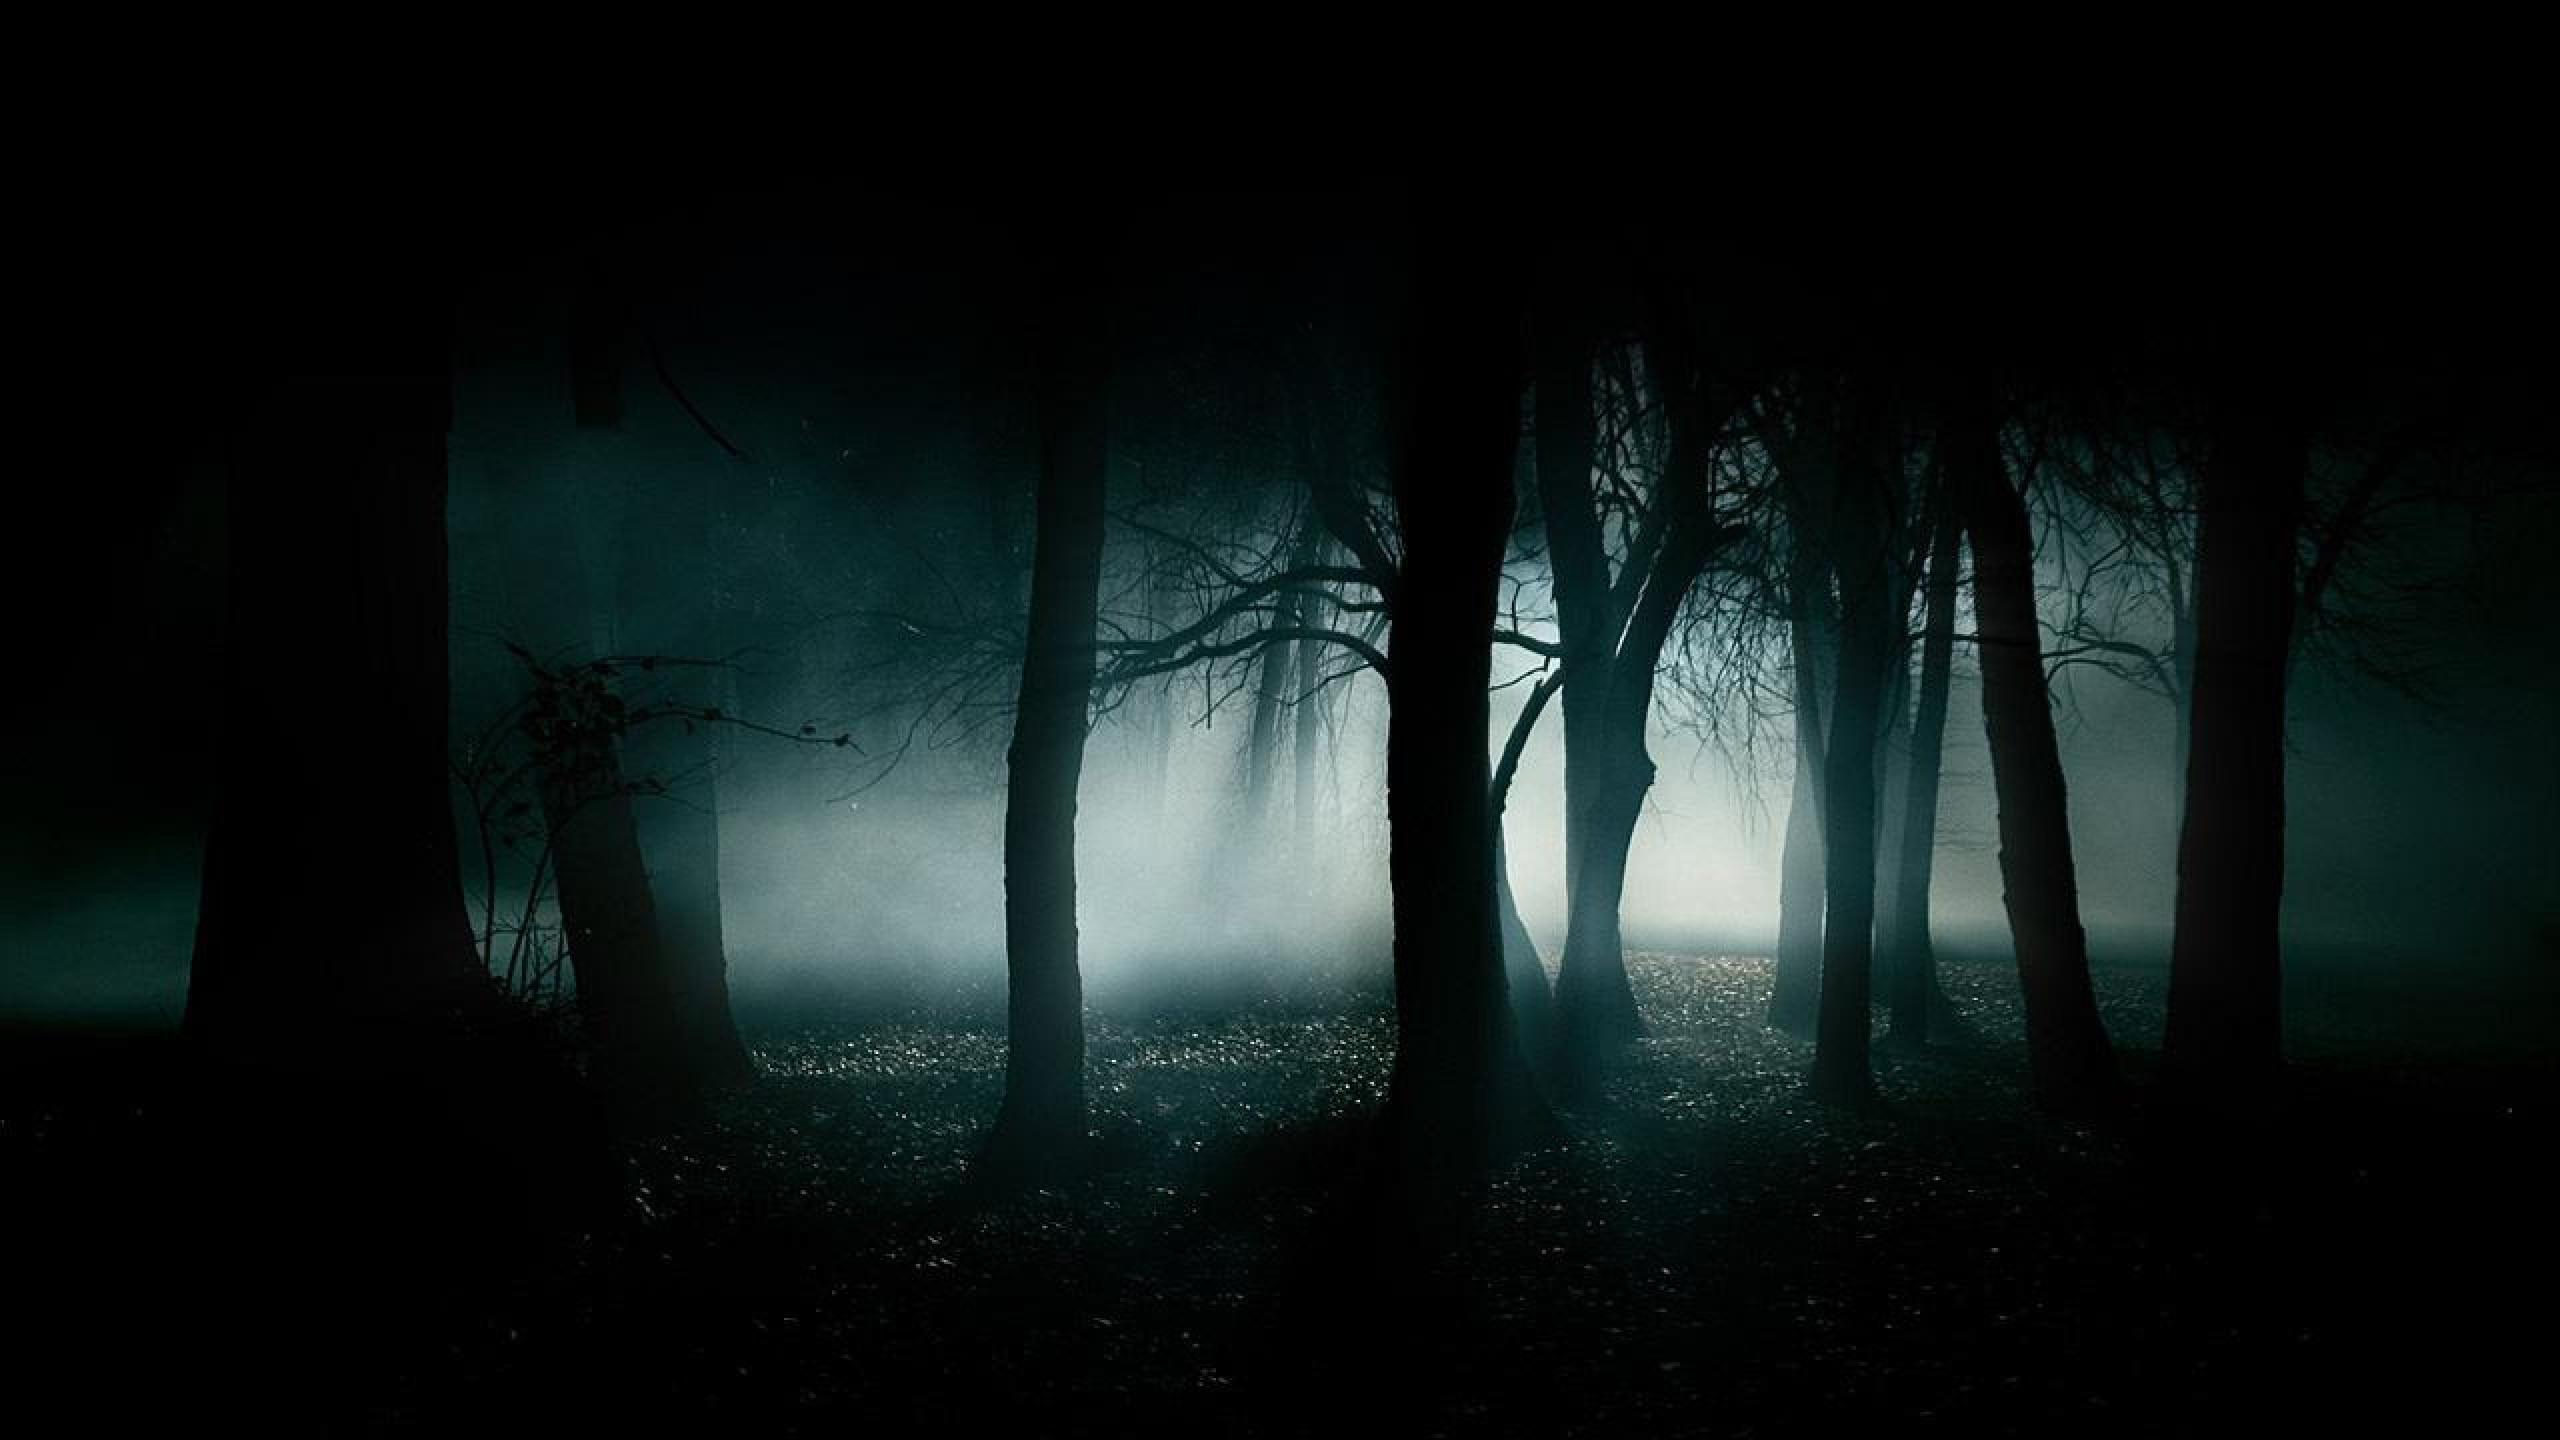 Dark Wallpaper Desktop h785038 Nature HD Wallpaper 2560x1440